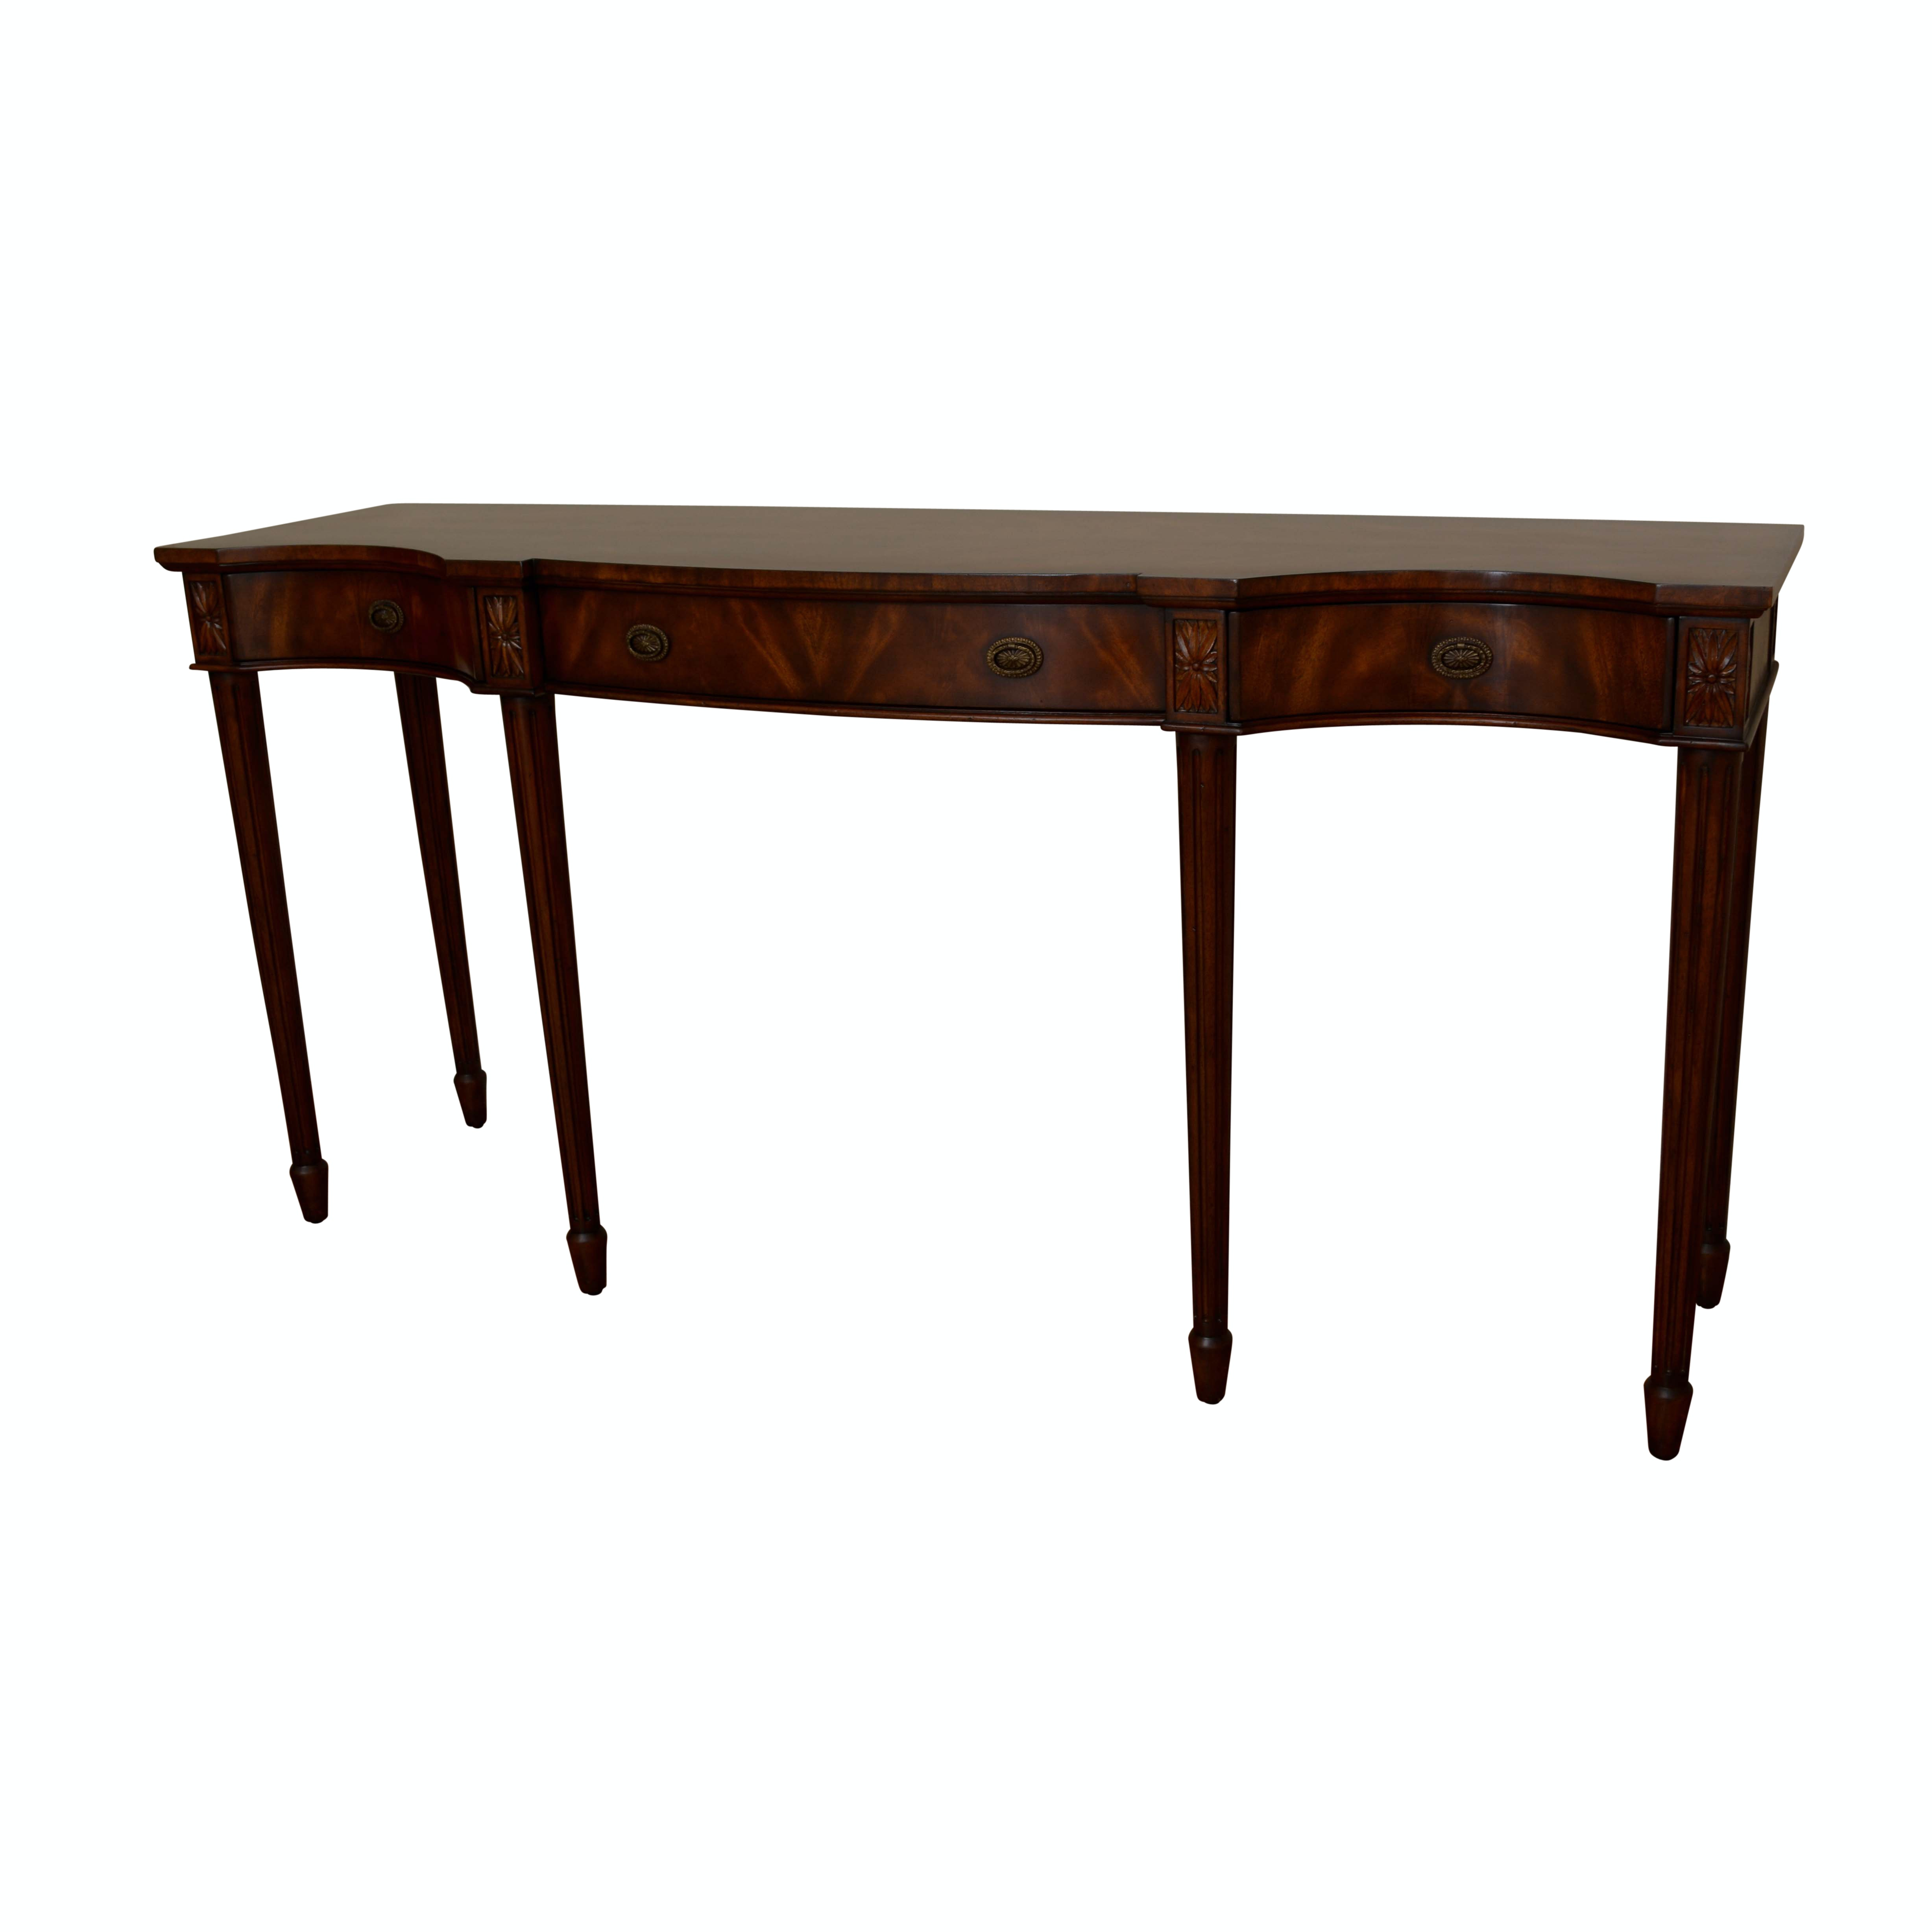 Sheraton Style Console Table by Sherrill